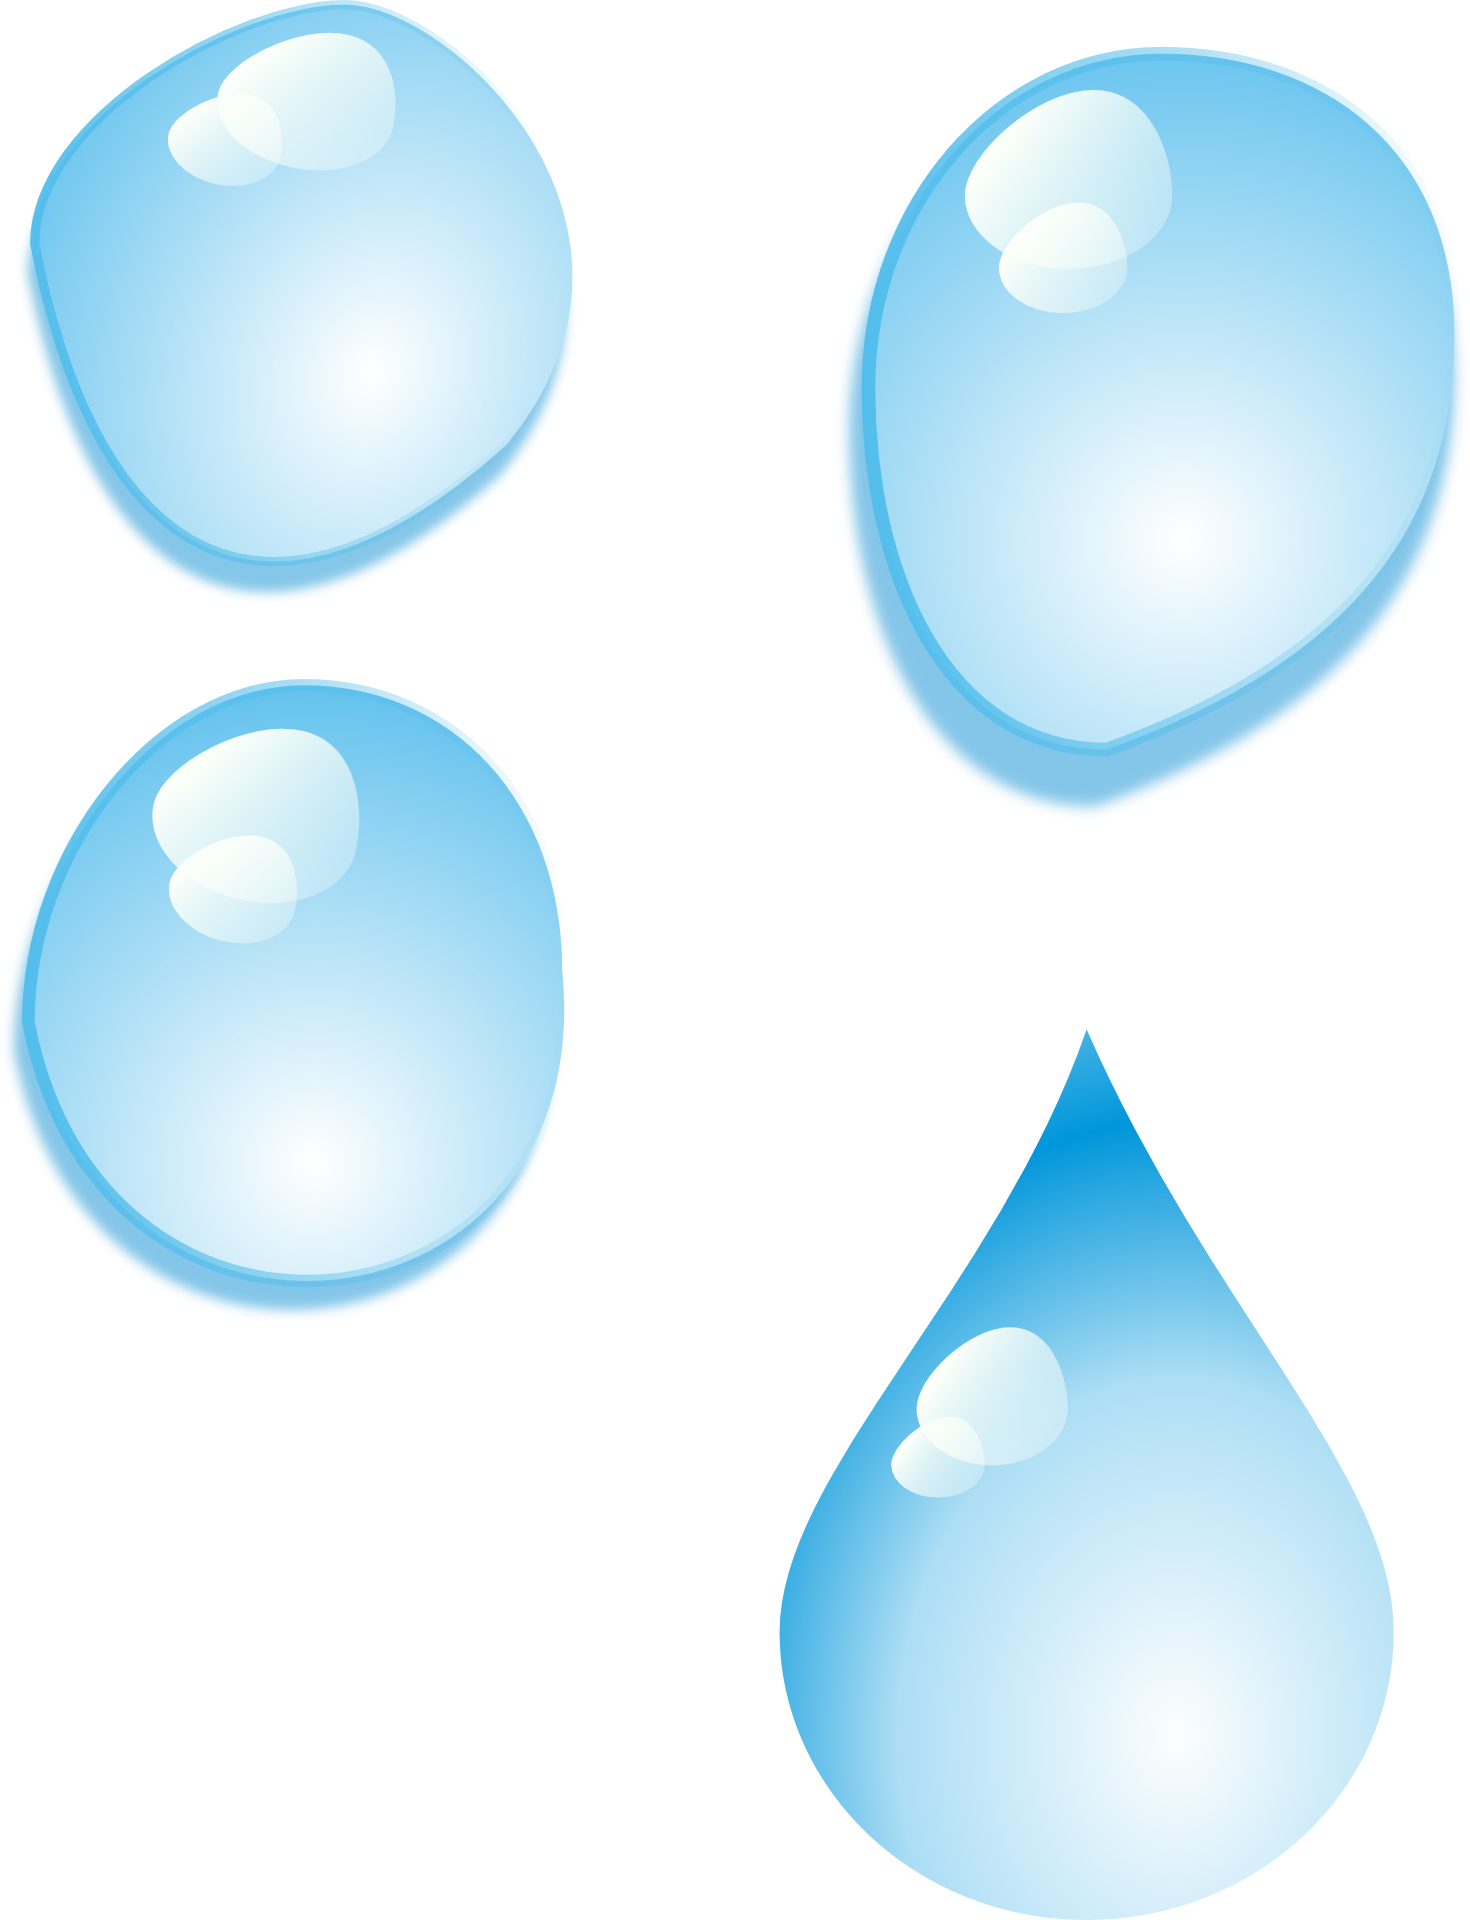 Liquid clipart teardrop Download on  Water Clip